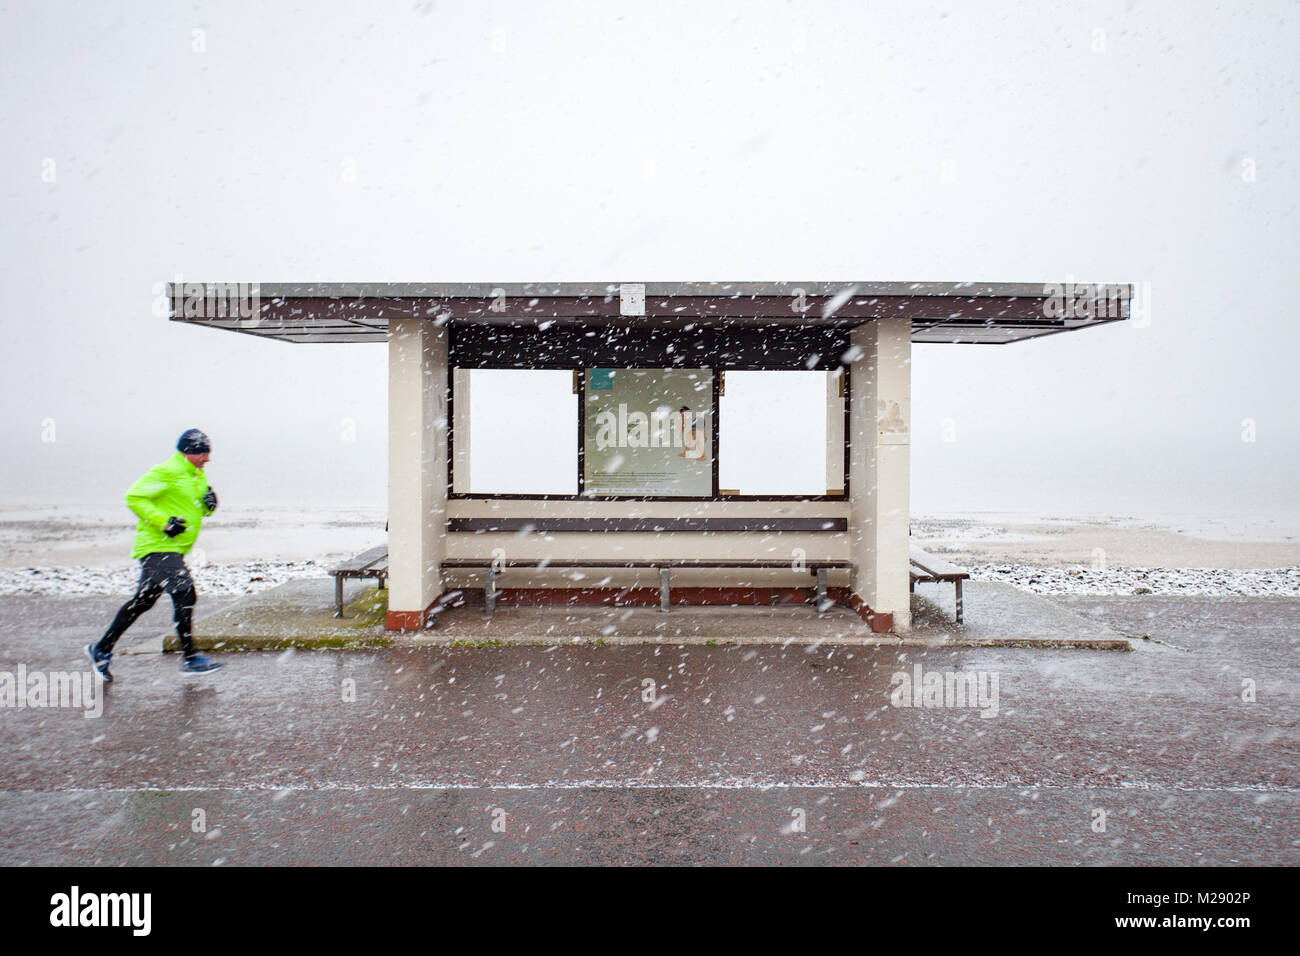 Llandudno, Wales, 6th February 2018. UK Weather. As predicted a yellow warning for snow for North Wales today with - Stock Image